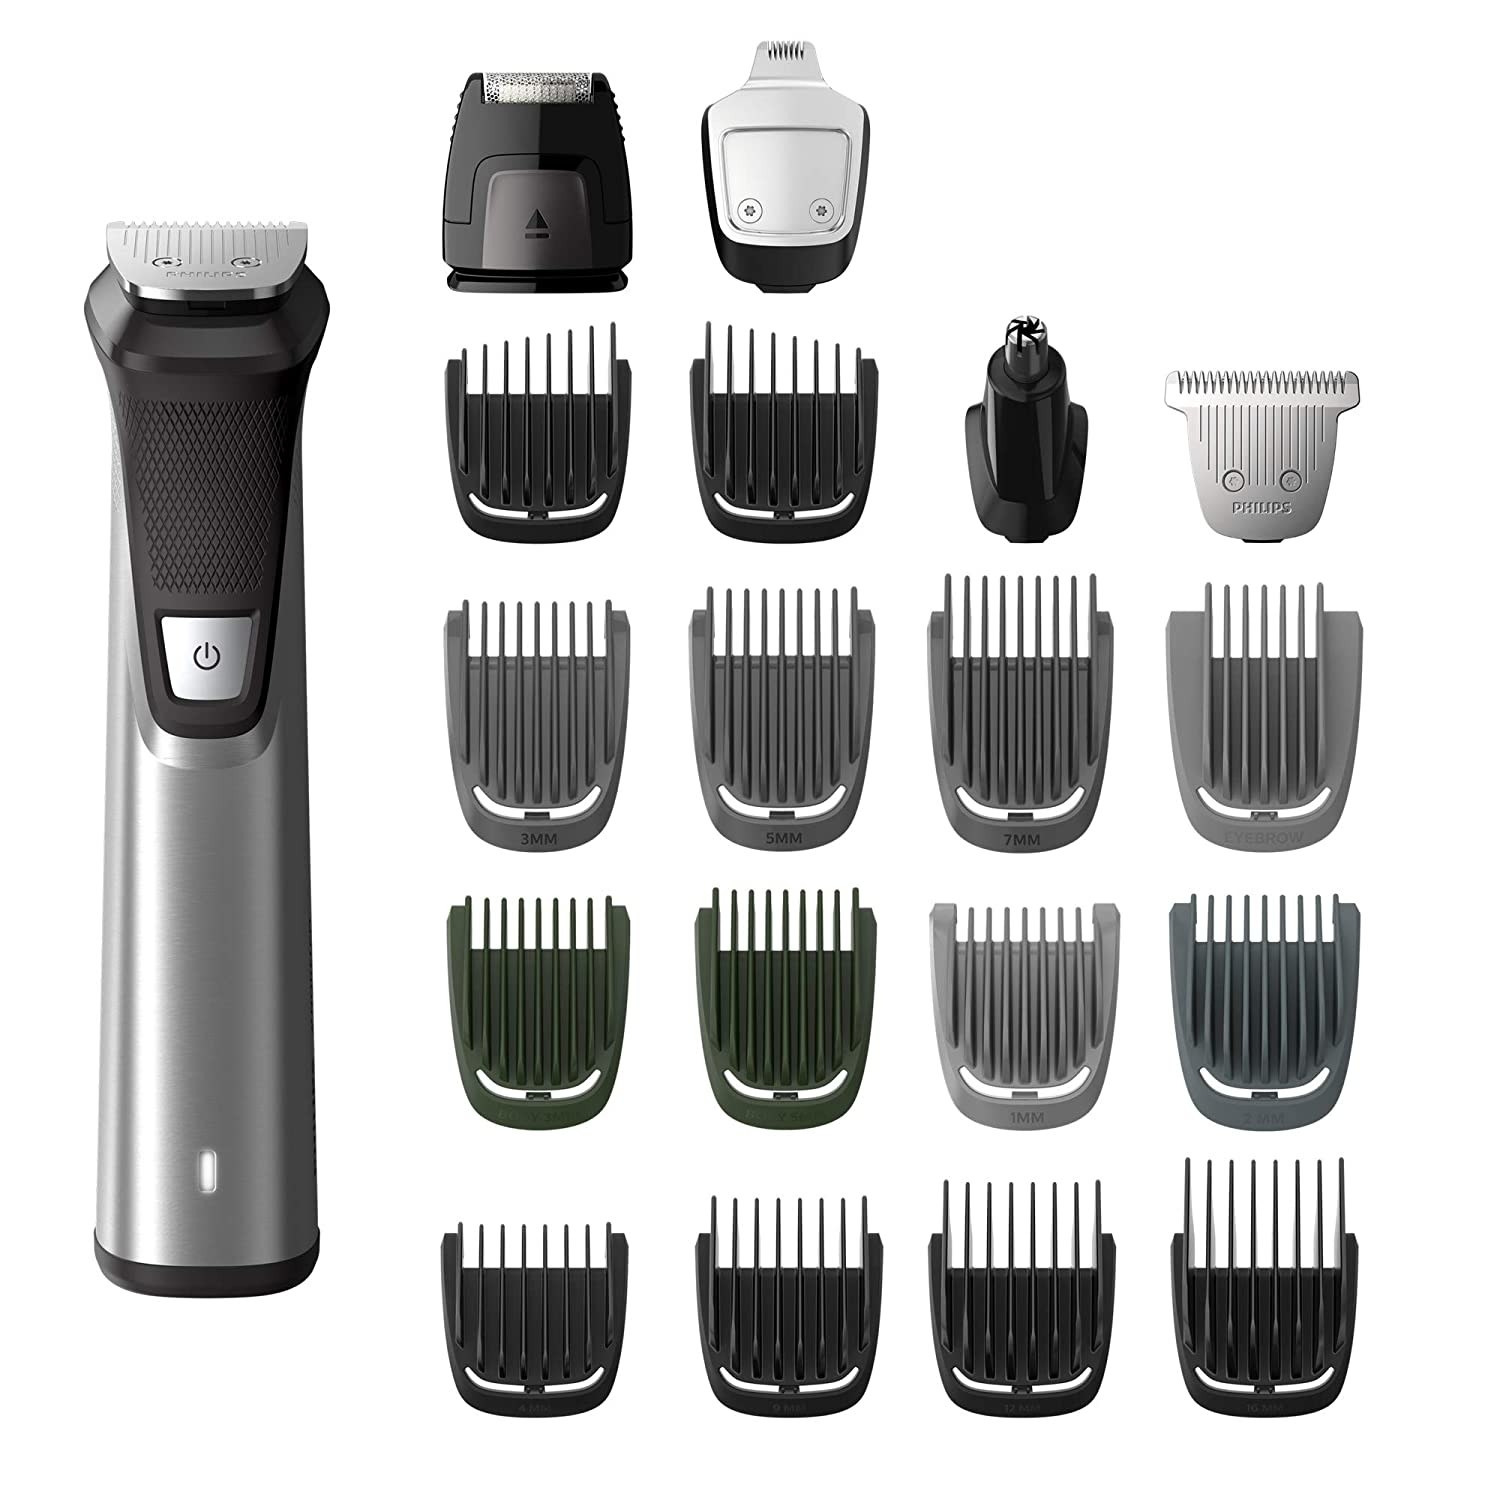 A silver and black trimmer with eighteen different shaving attachments